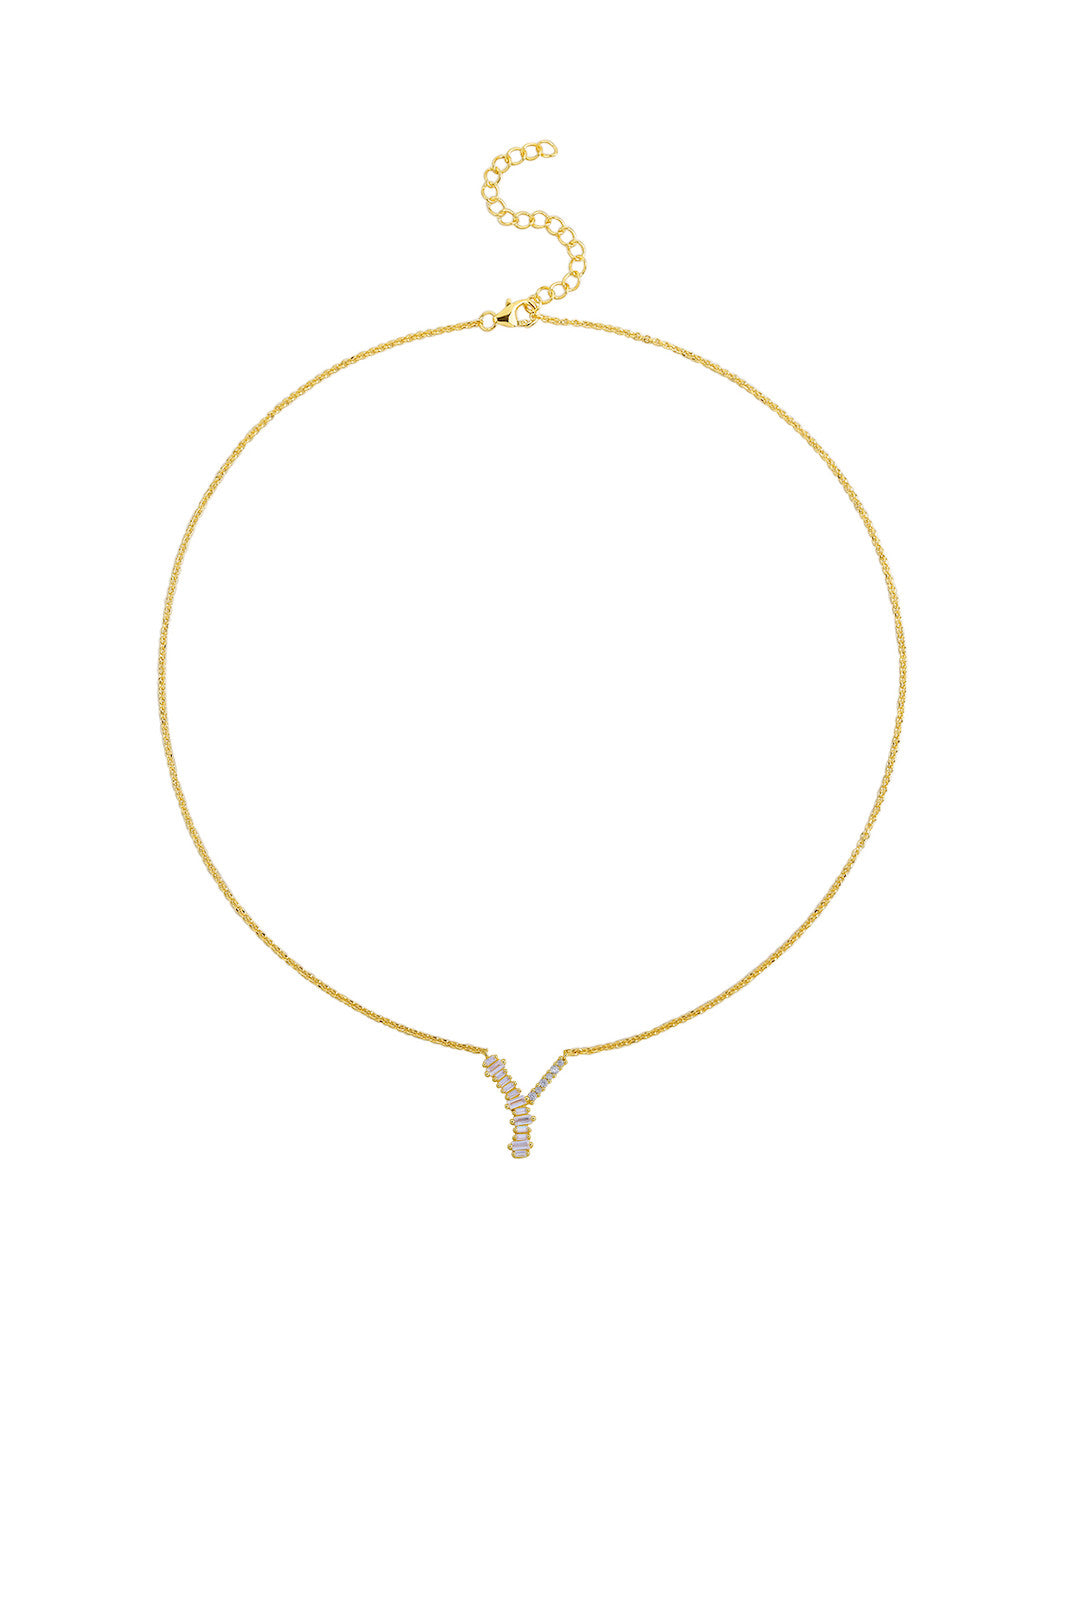 Gold Plated Sterling Silver Initial Necklace - Letter Y Detail